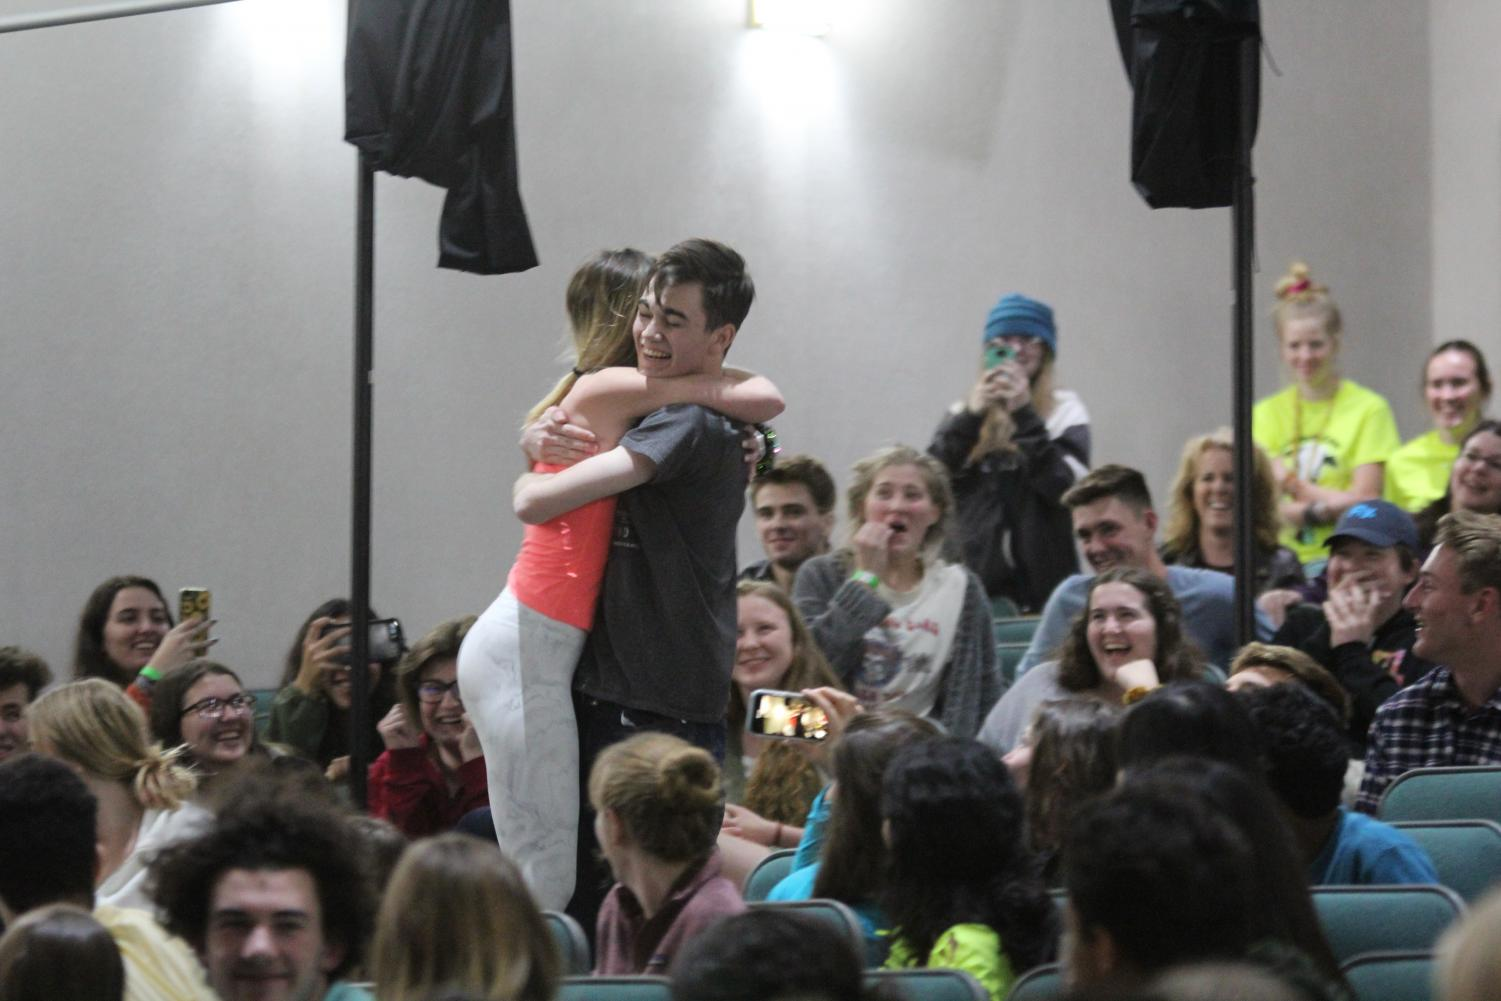 Seniors+Jacob+Northam+and+Jordan+Stradal+embrace+as+Kermit+and+Miss+Piggy+due+to+the+hypnotists+commands.+